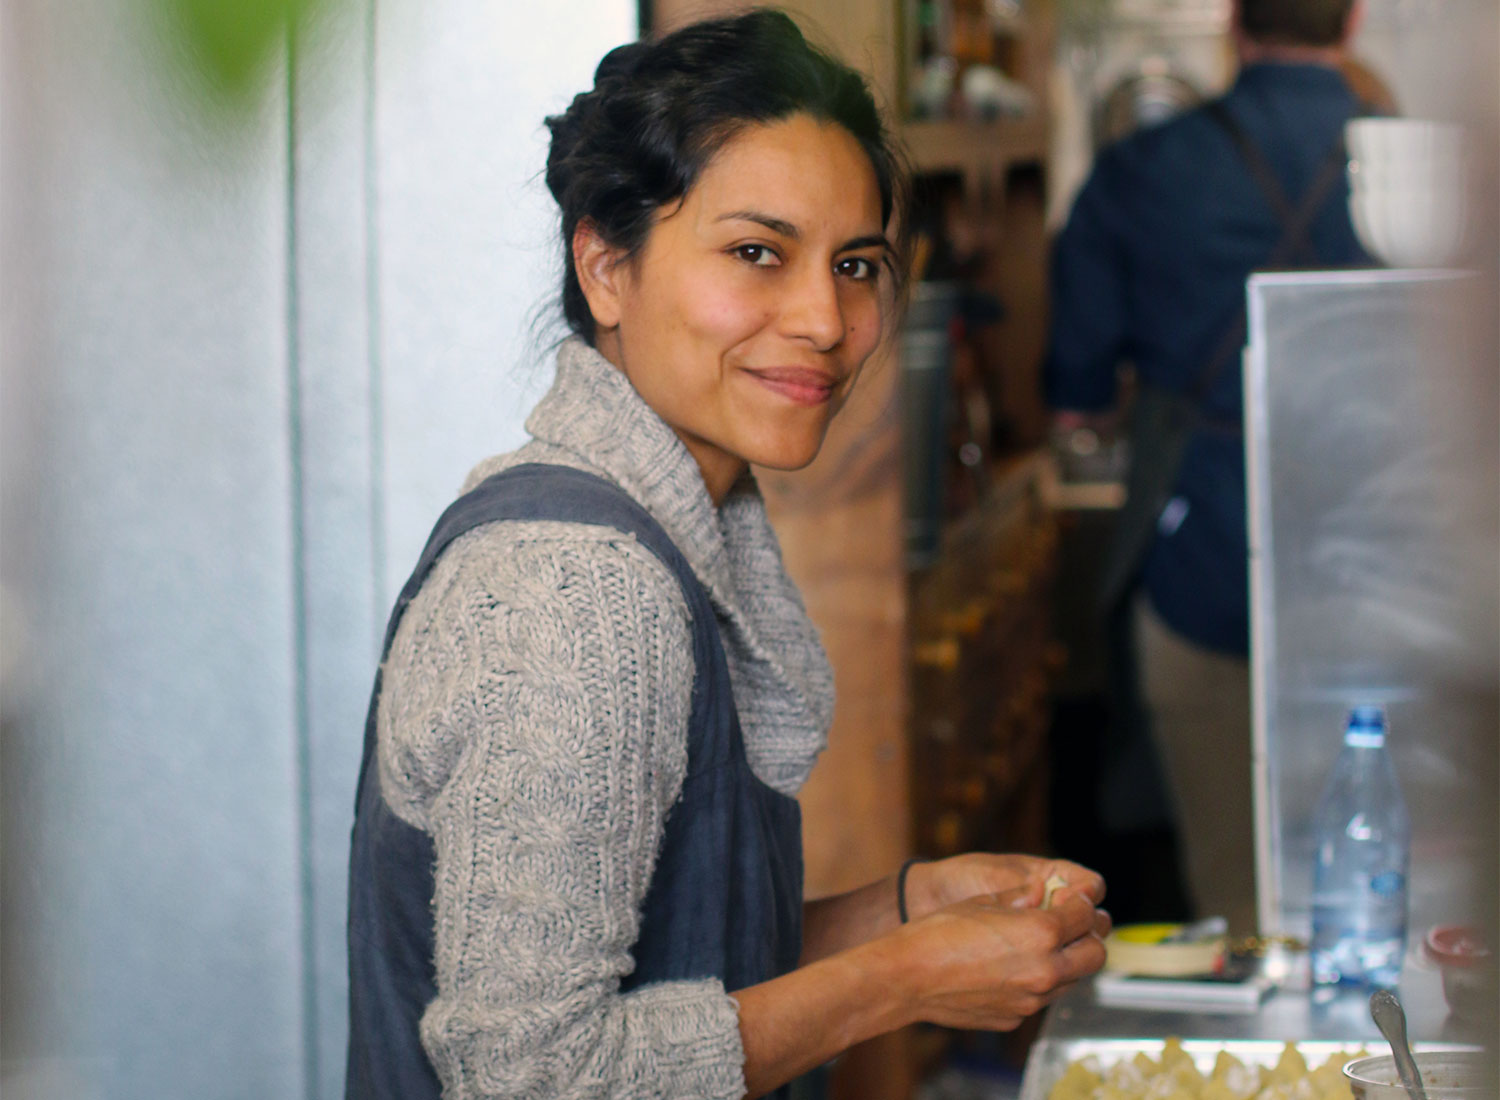 Chef/owner Dalia Martinez of Flower + Bone restaurant in Santa Rosa. Heather Irwin/Sonoma Magazine.